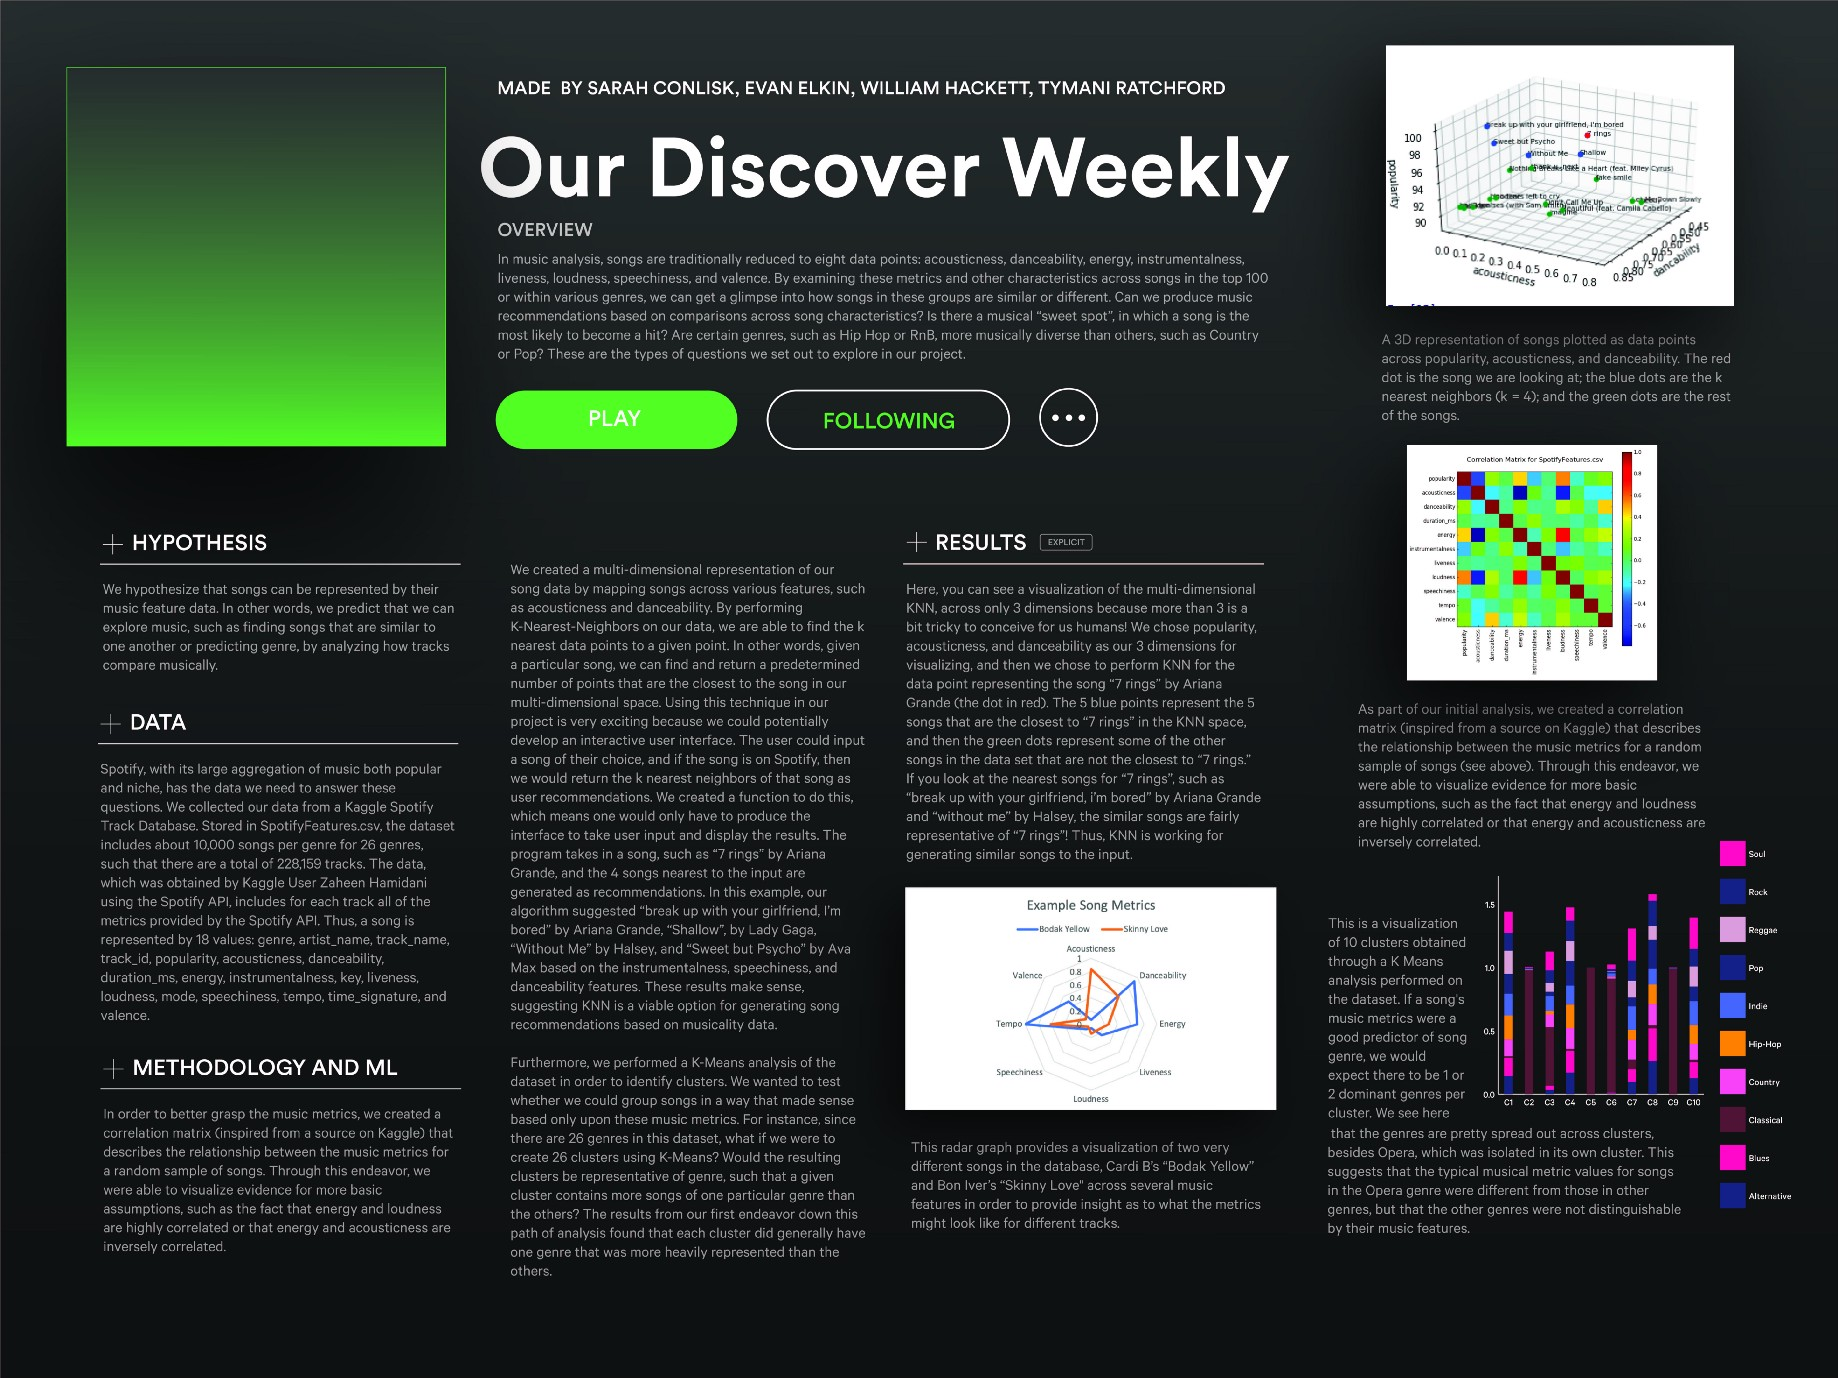 Our Discover Weekly - cs1951a final_project - Medium